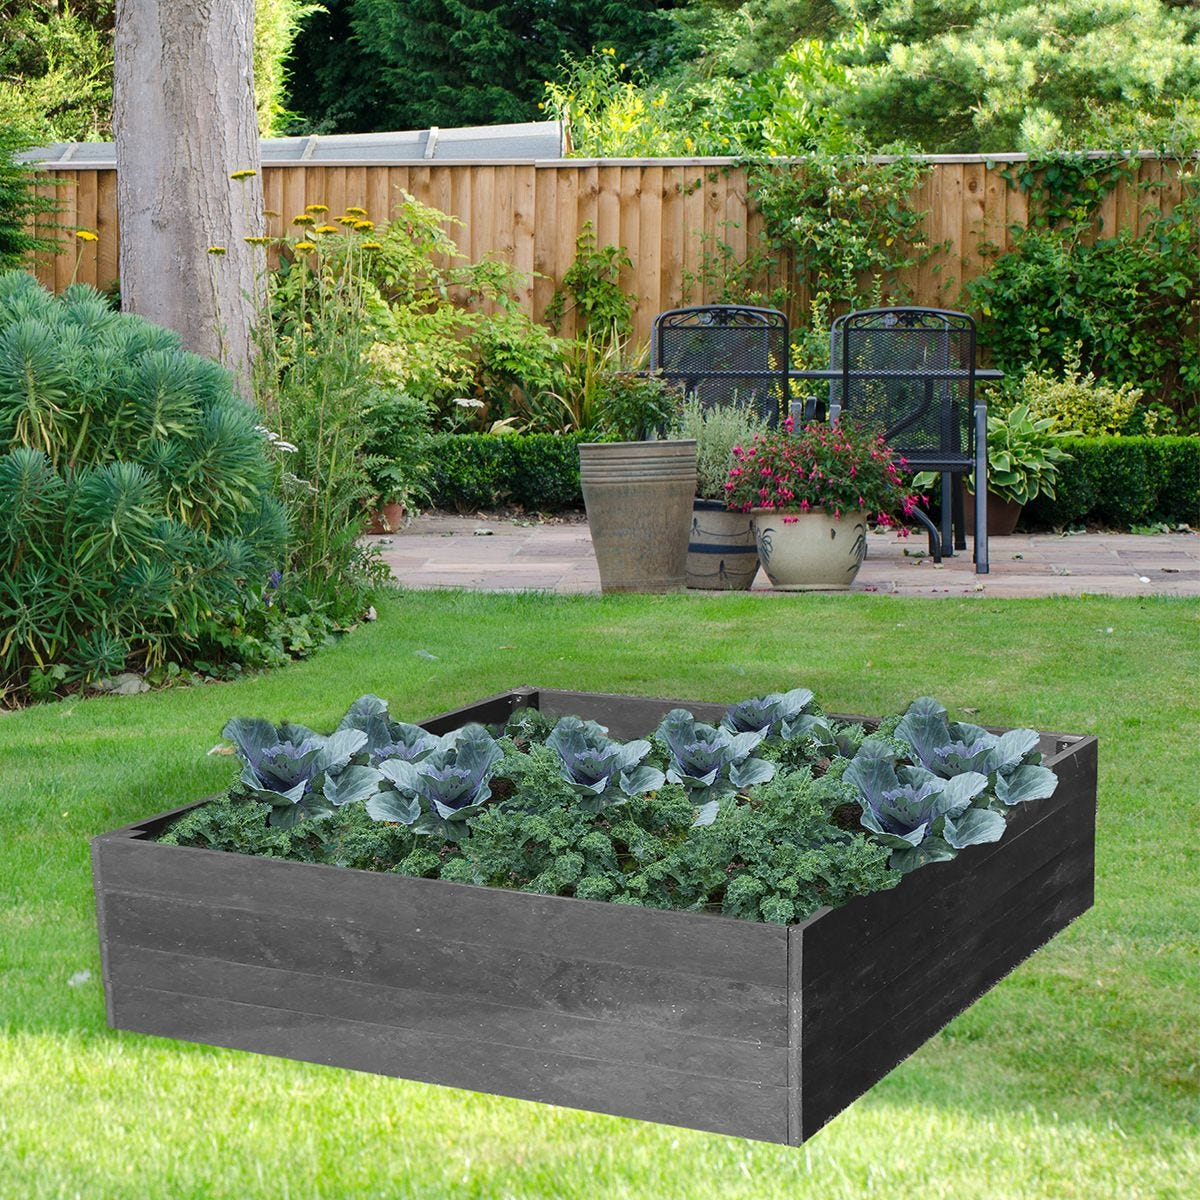 NBB Recycled Furniture EverYear Raised Bed L1200 x D1240 x H400mm - Grey